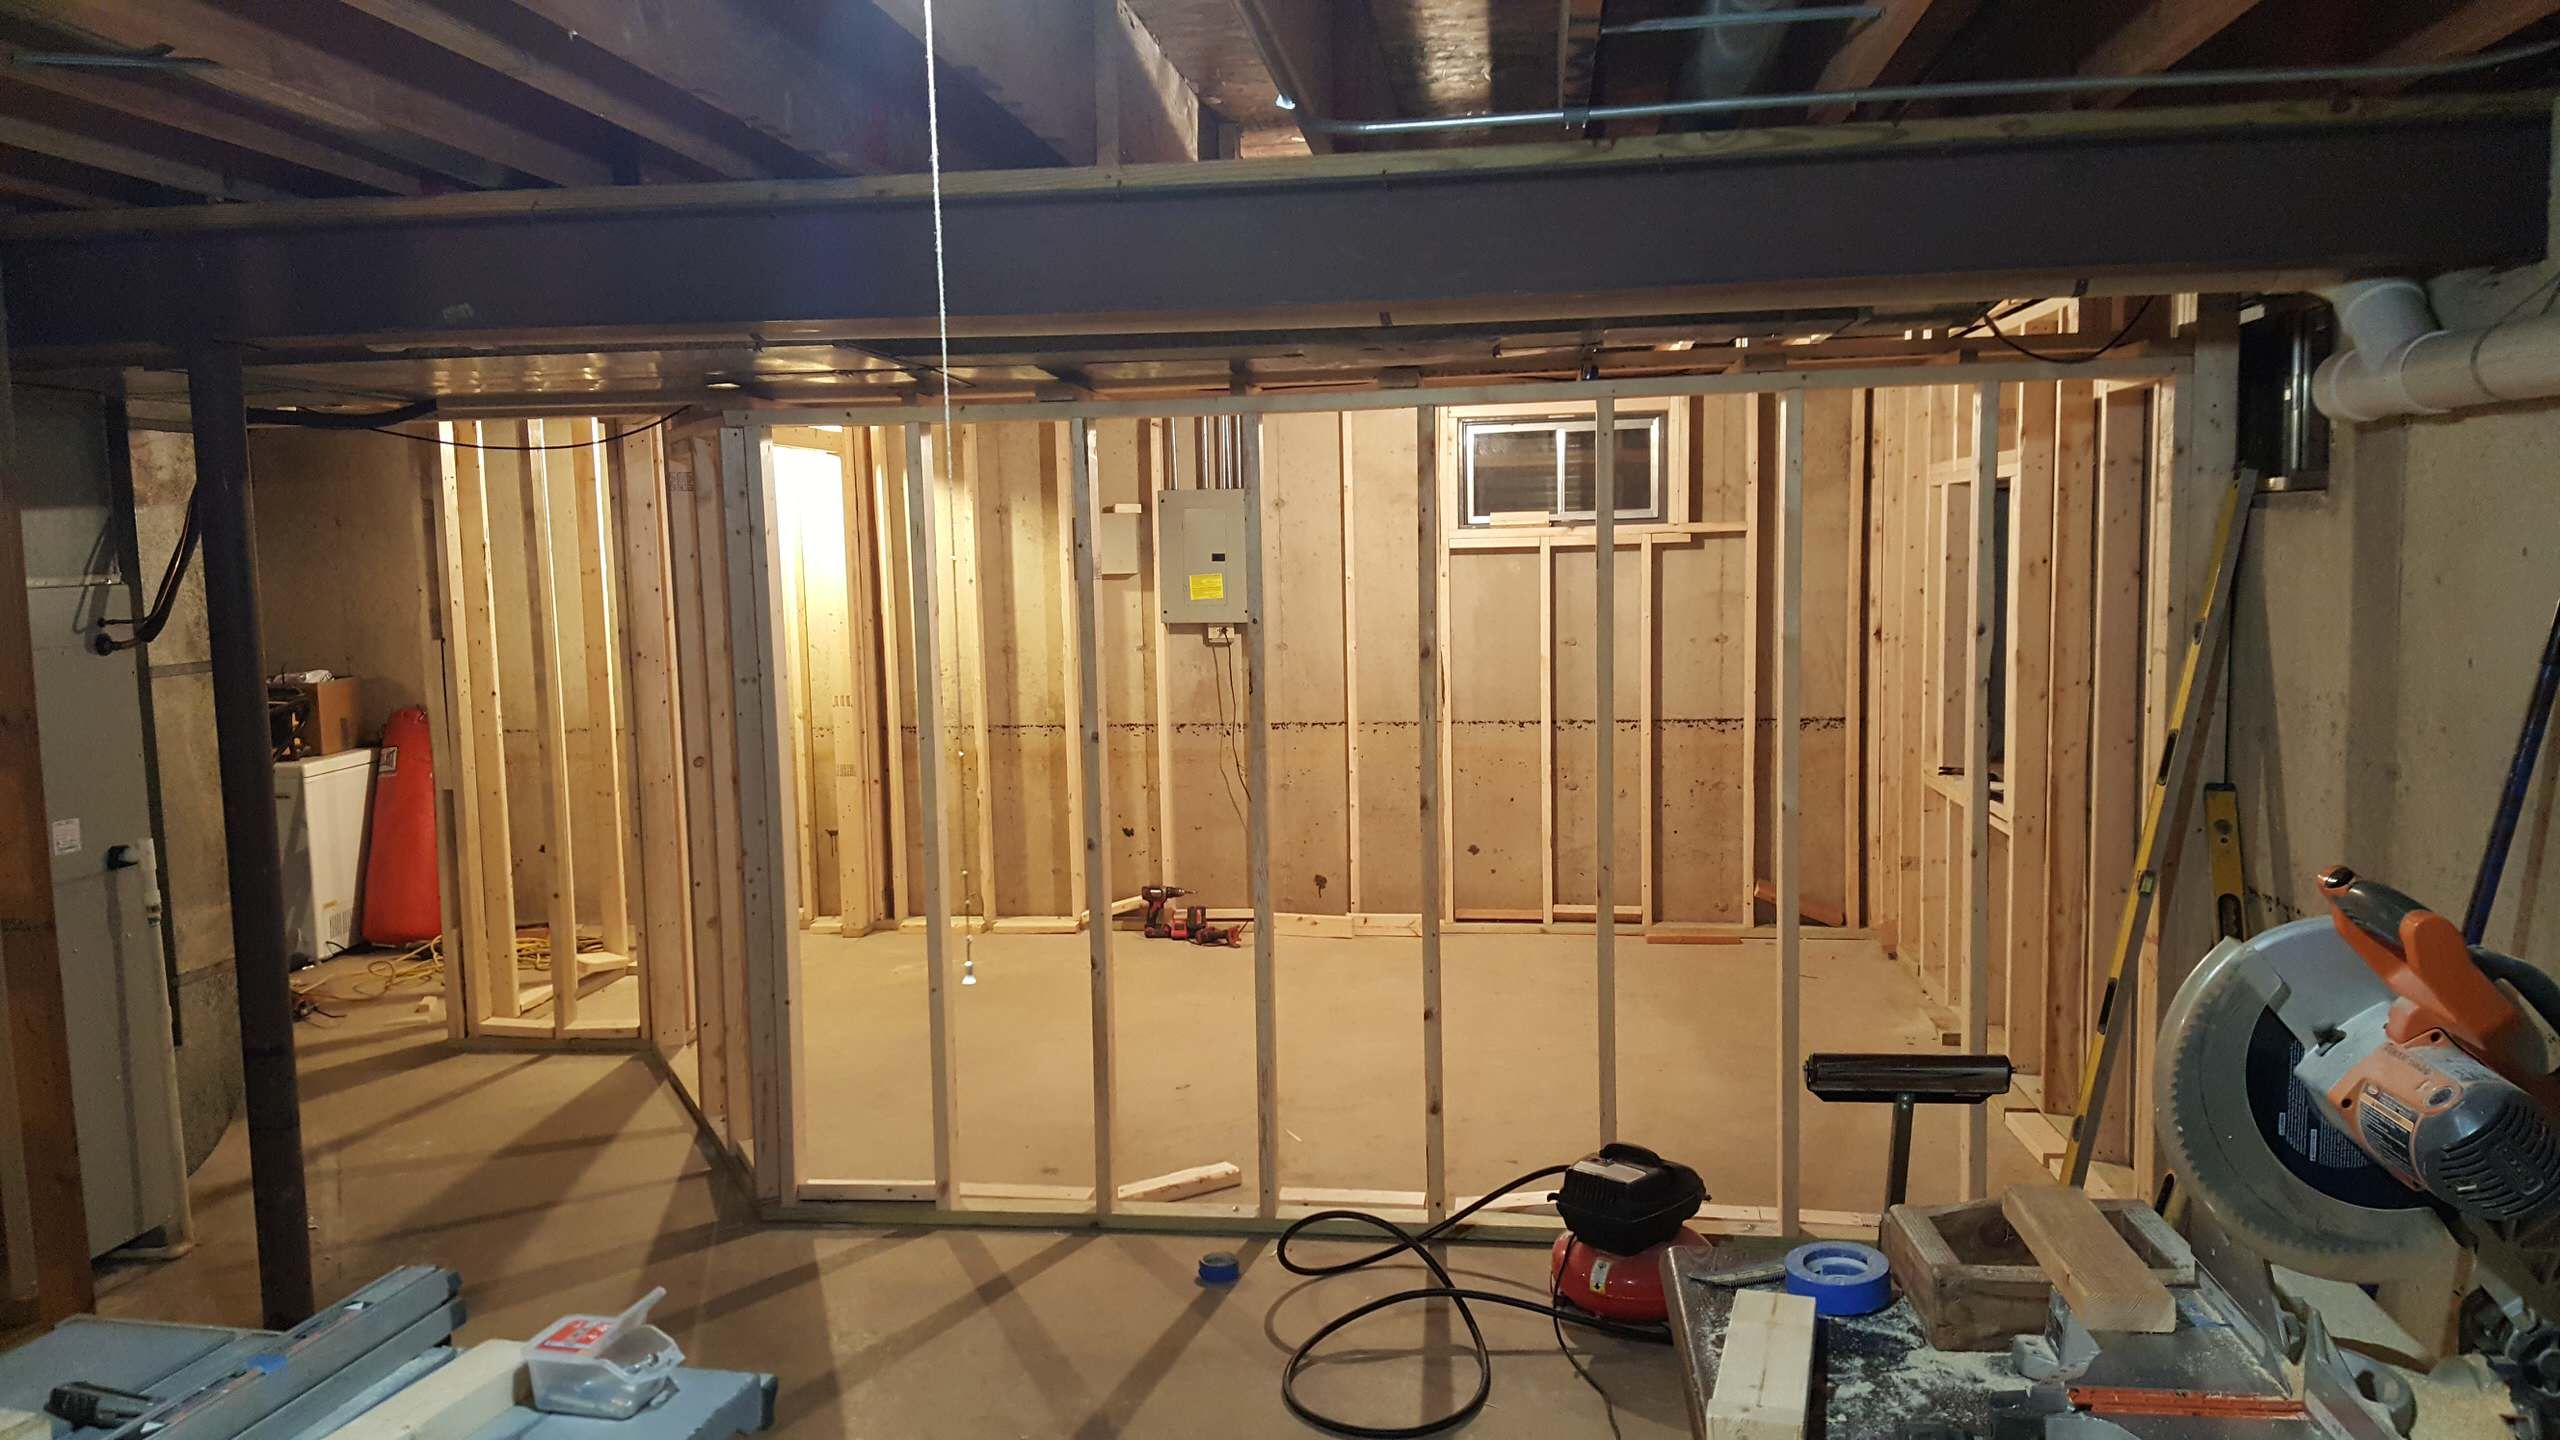 Framing out a basement bedroom/office